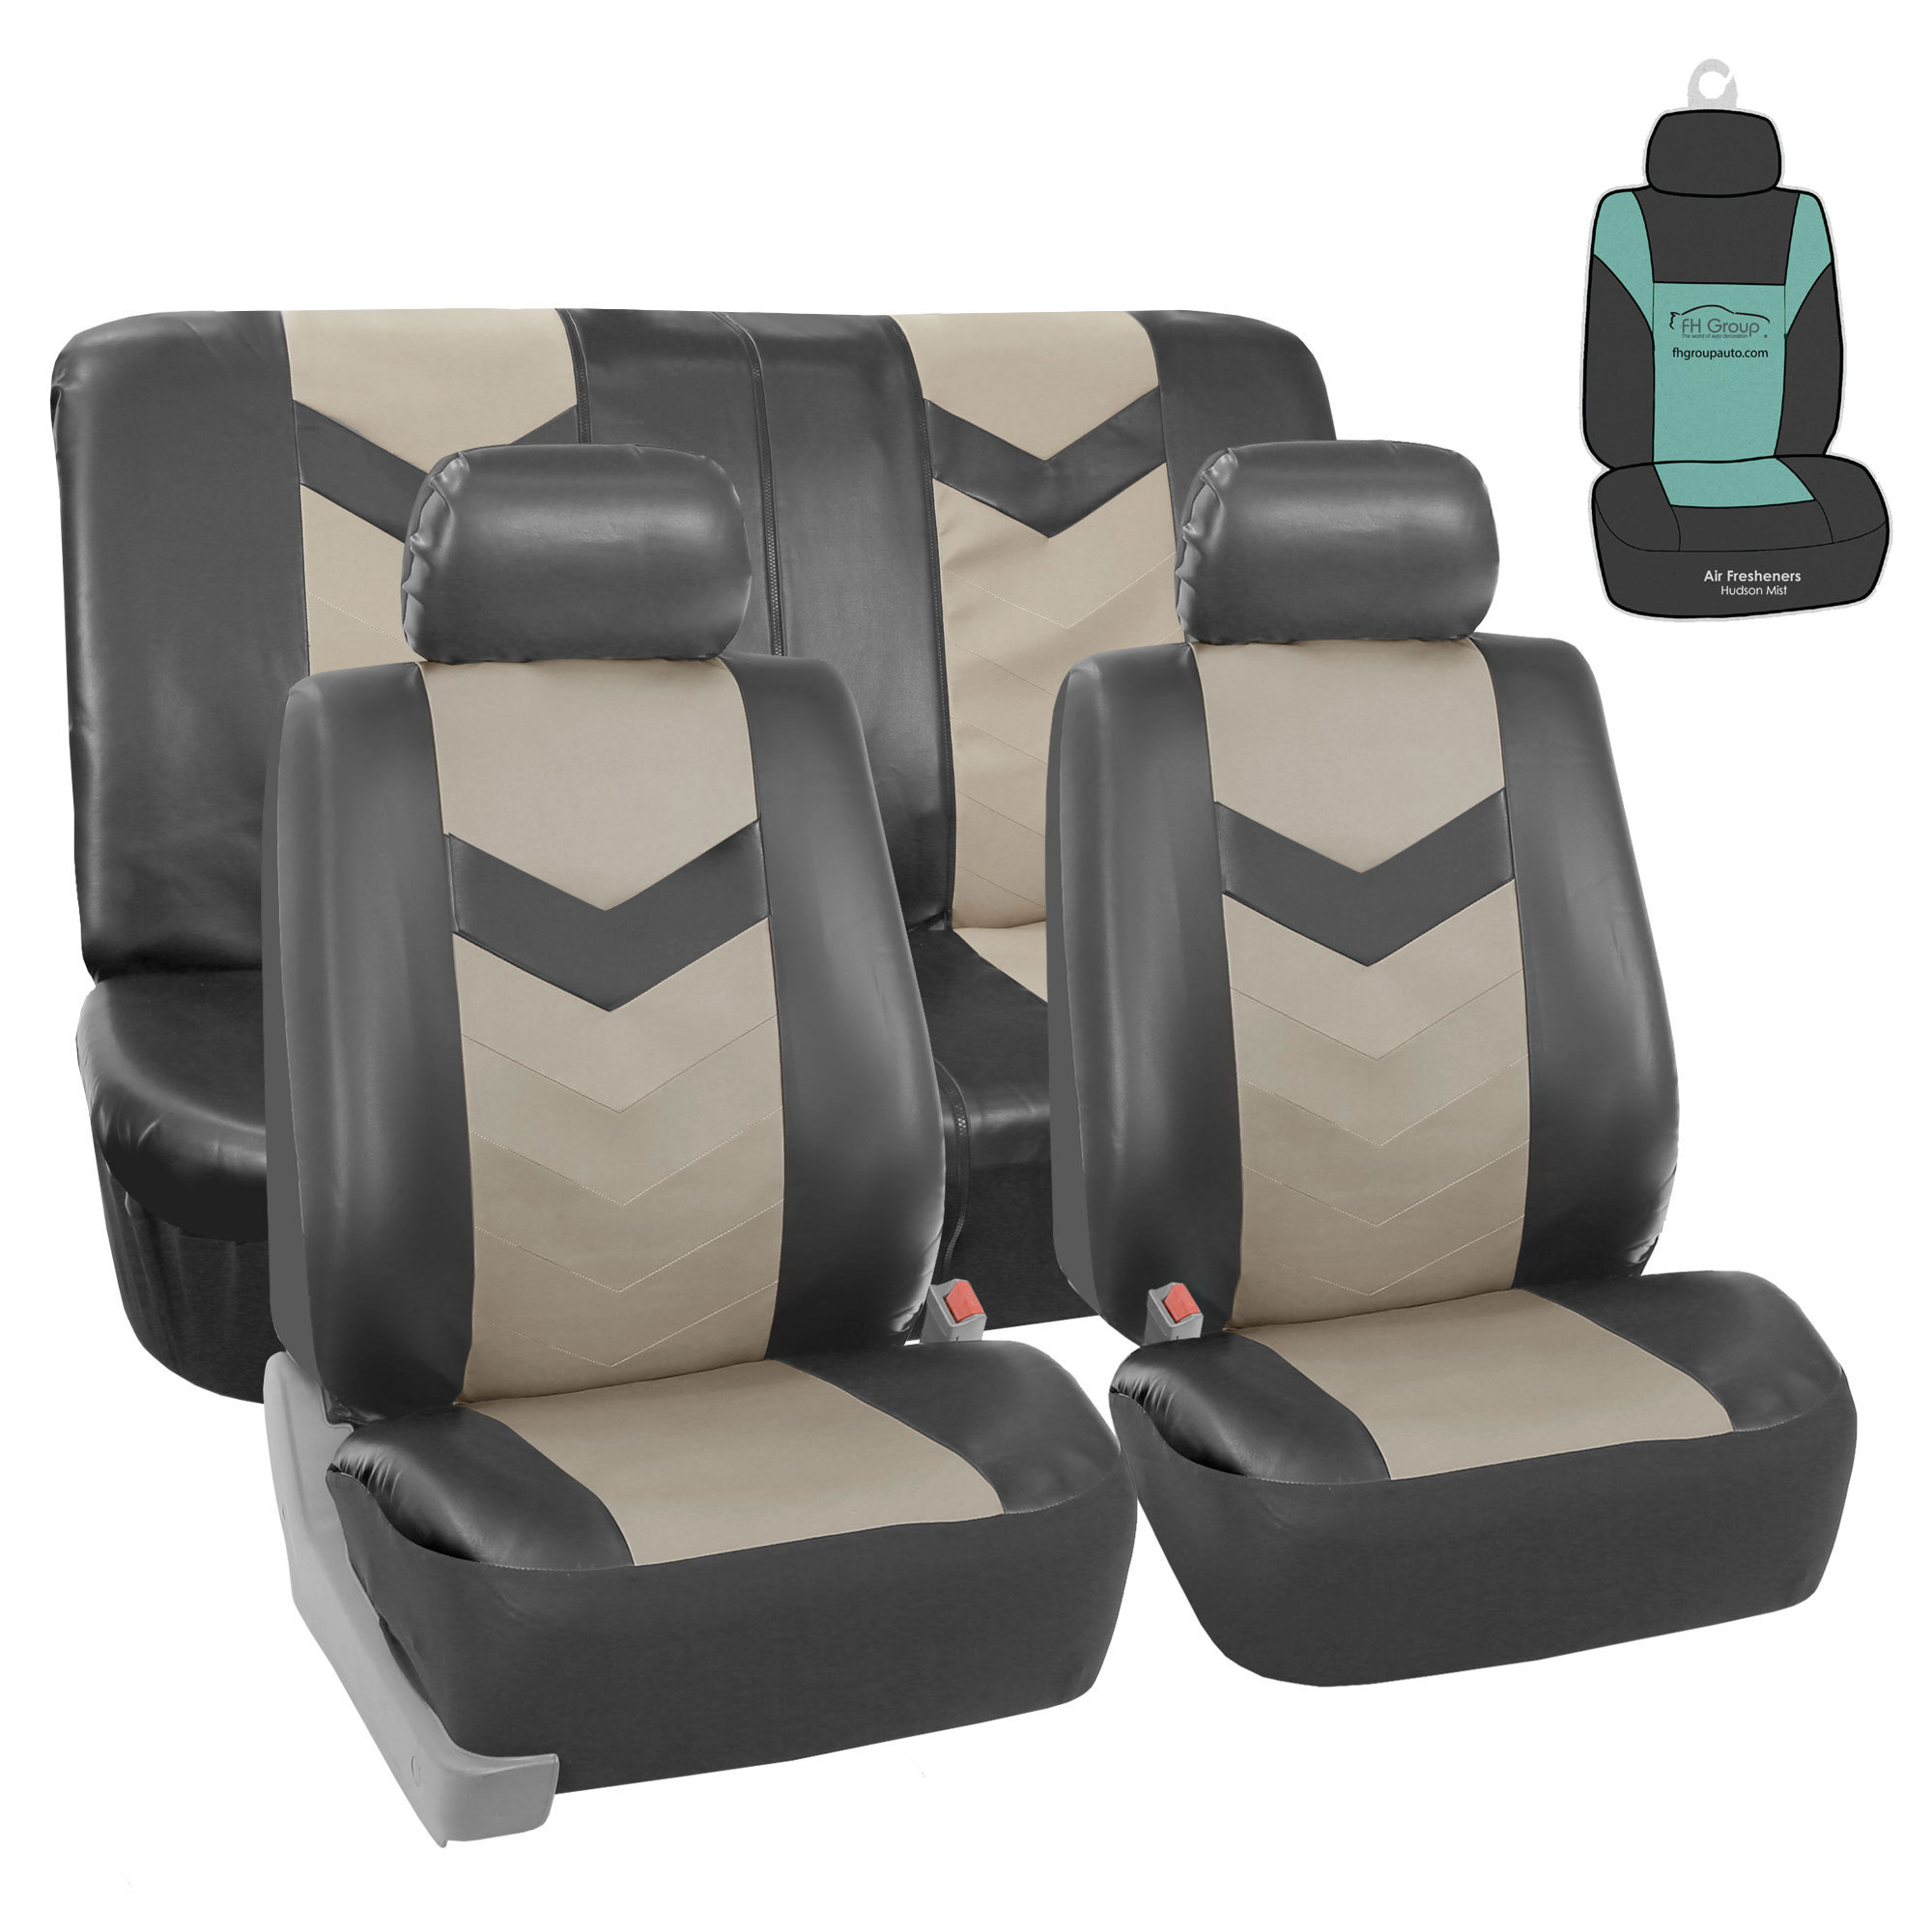 FH Gorup PU Leather Seat Covers For Auto Car SUV 2 Tone Gray w/ Accessories / Free Gift